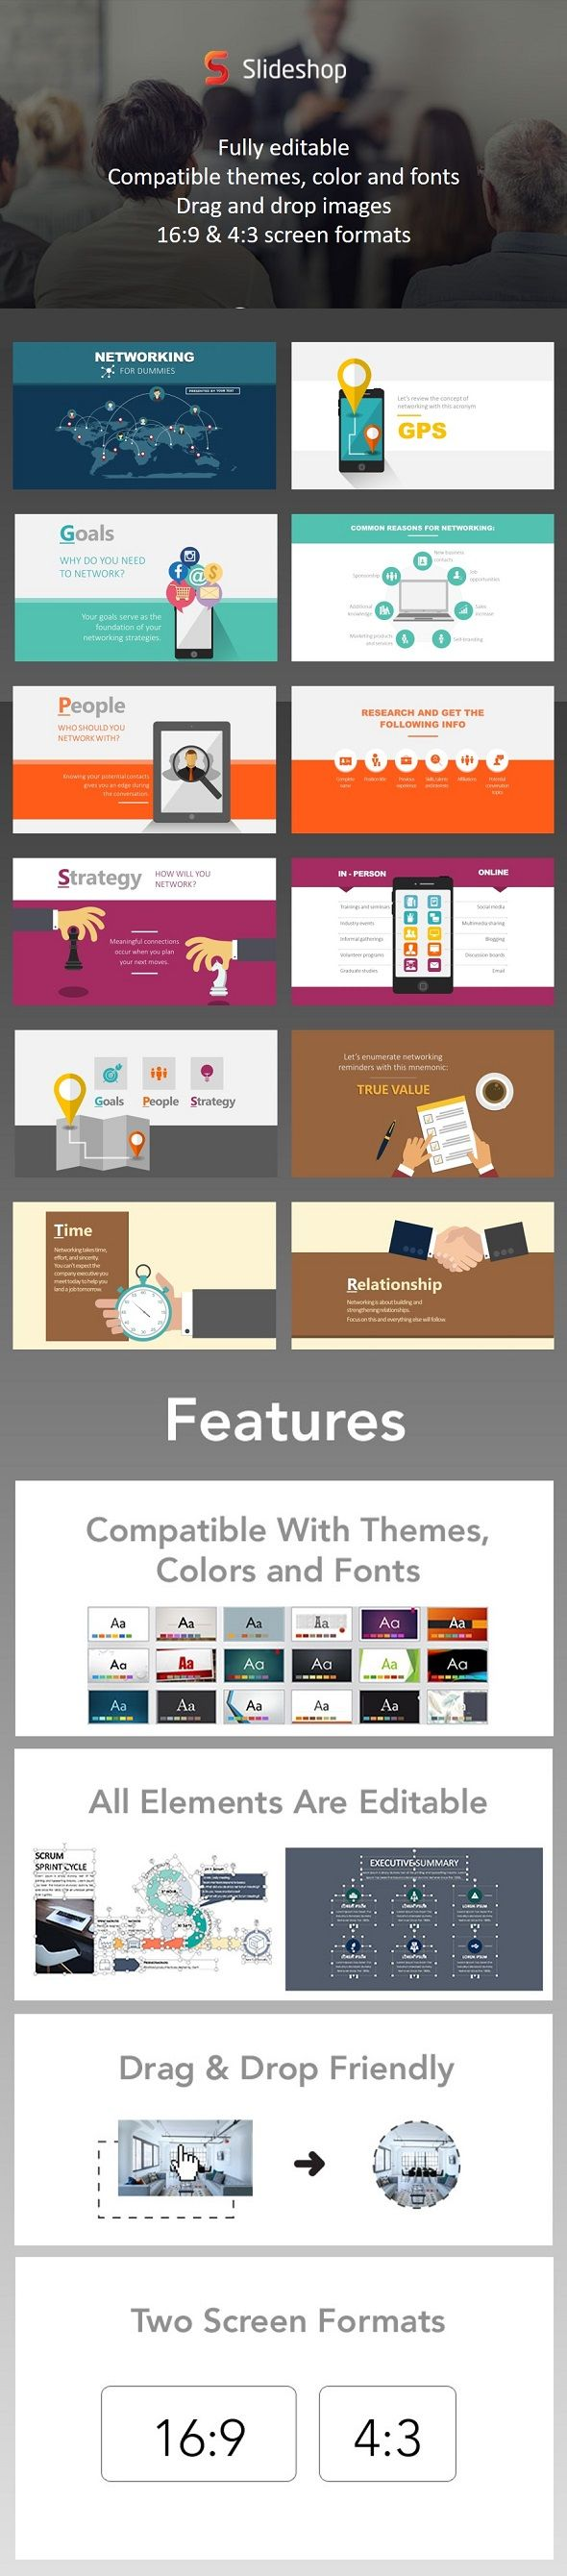 493 best businesses powerpoint presentation images on pinterest networking for dummies toneelgroepblik Image collections